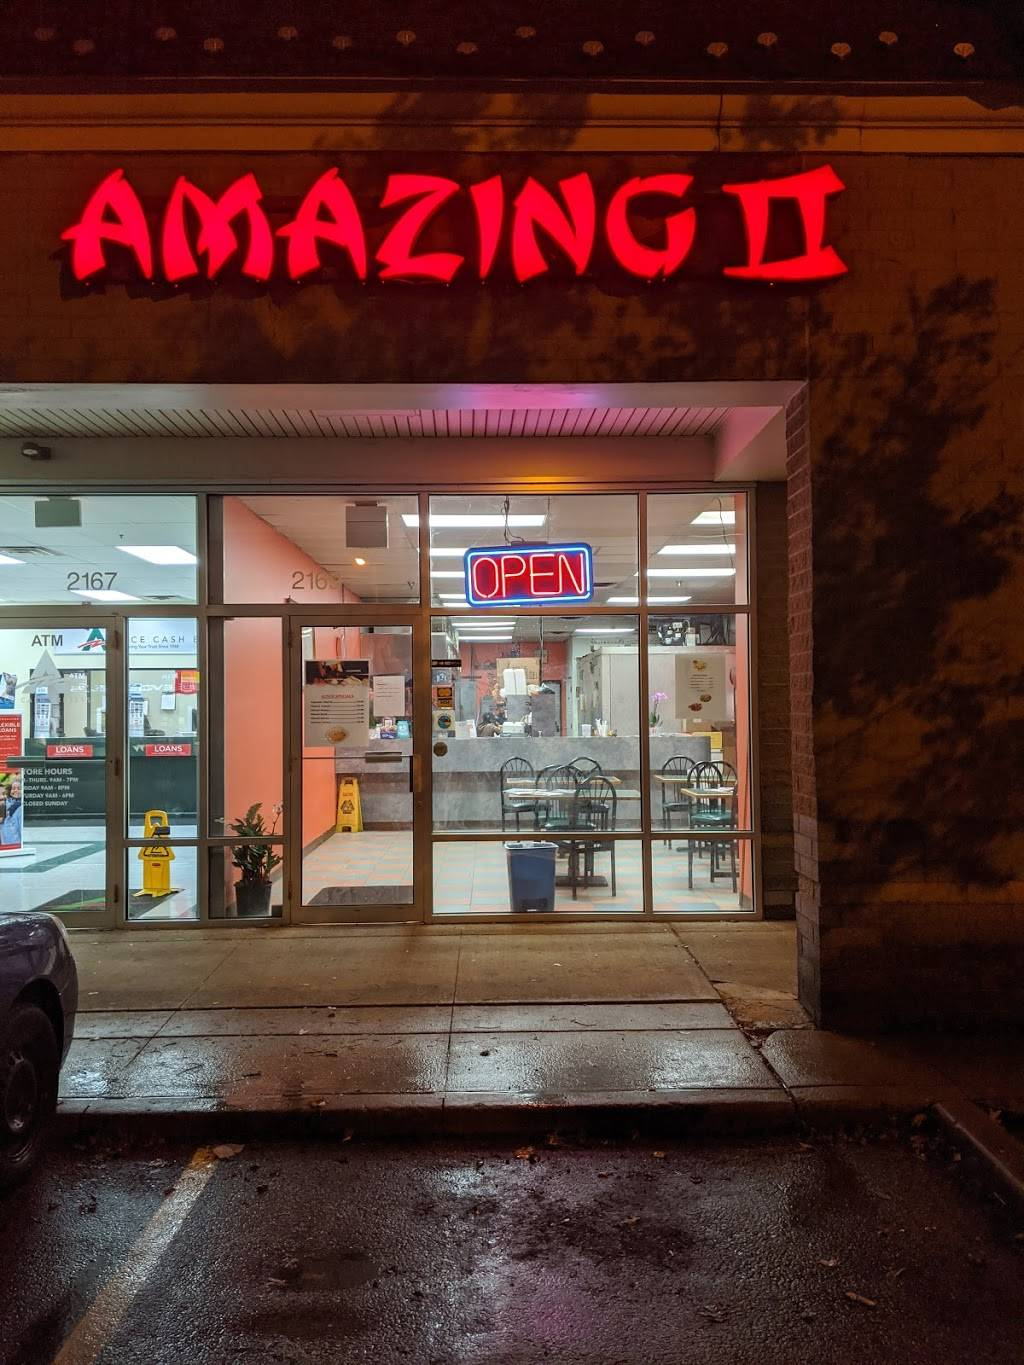 Amazing Hibachi | restaurant | 2169 S Taylor Rd, University Heights, OH 44118, USA | 2163978282 OR +1 216-397-8282